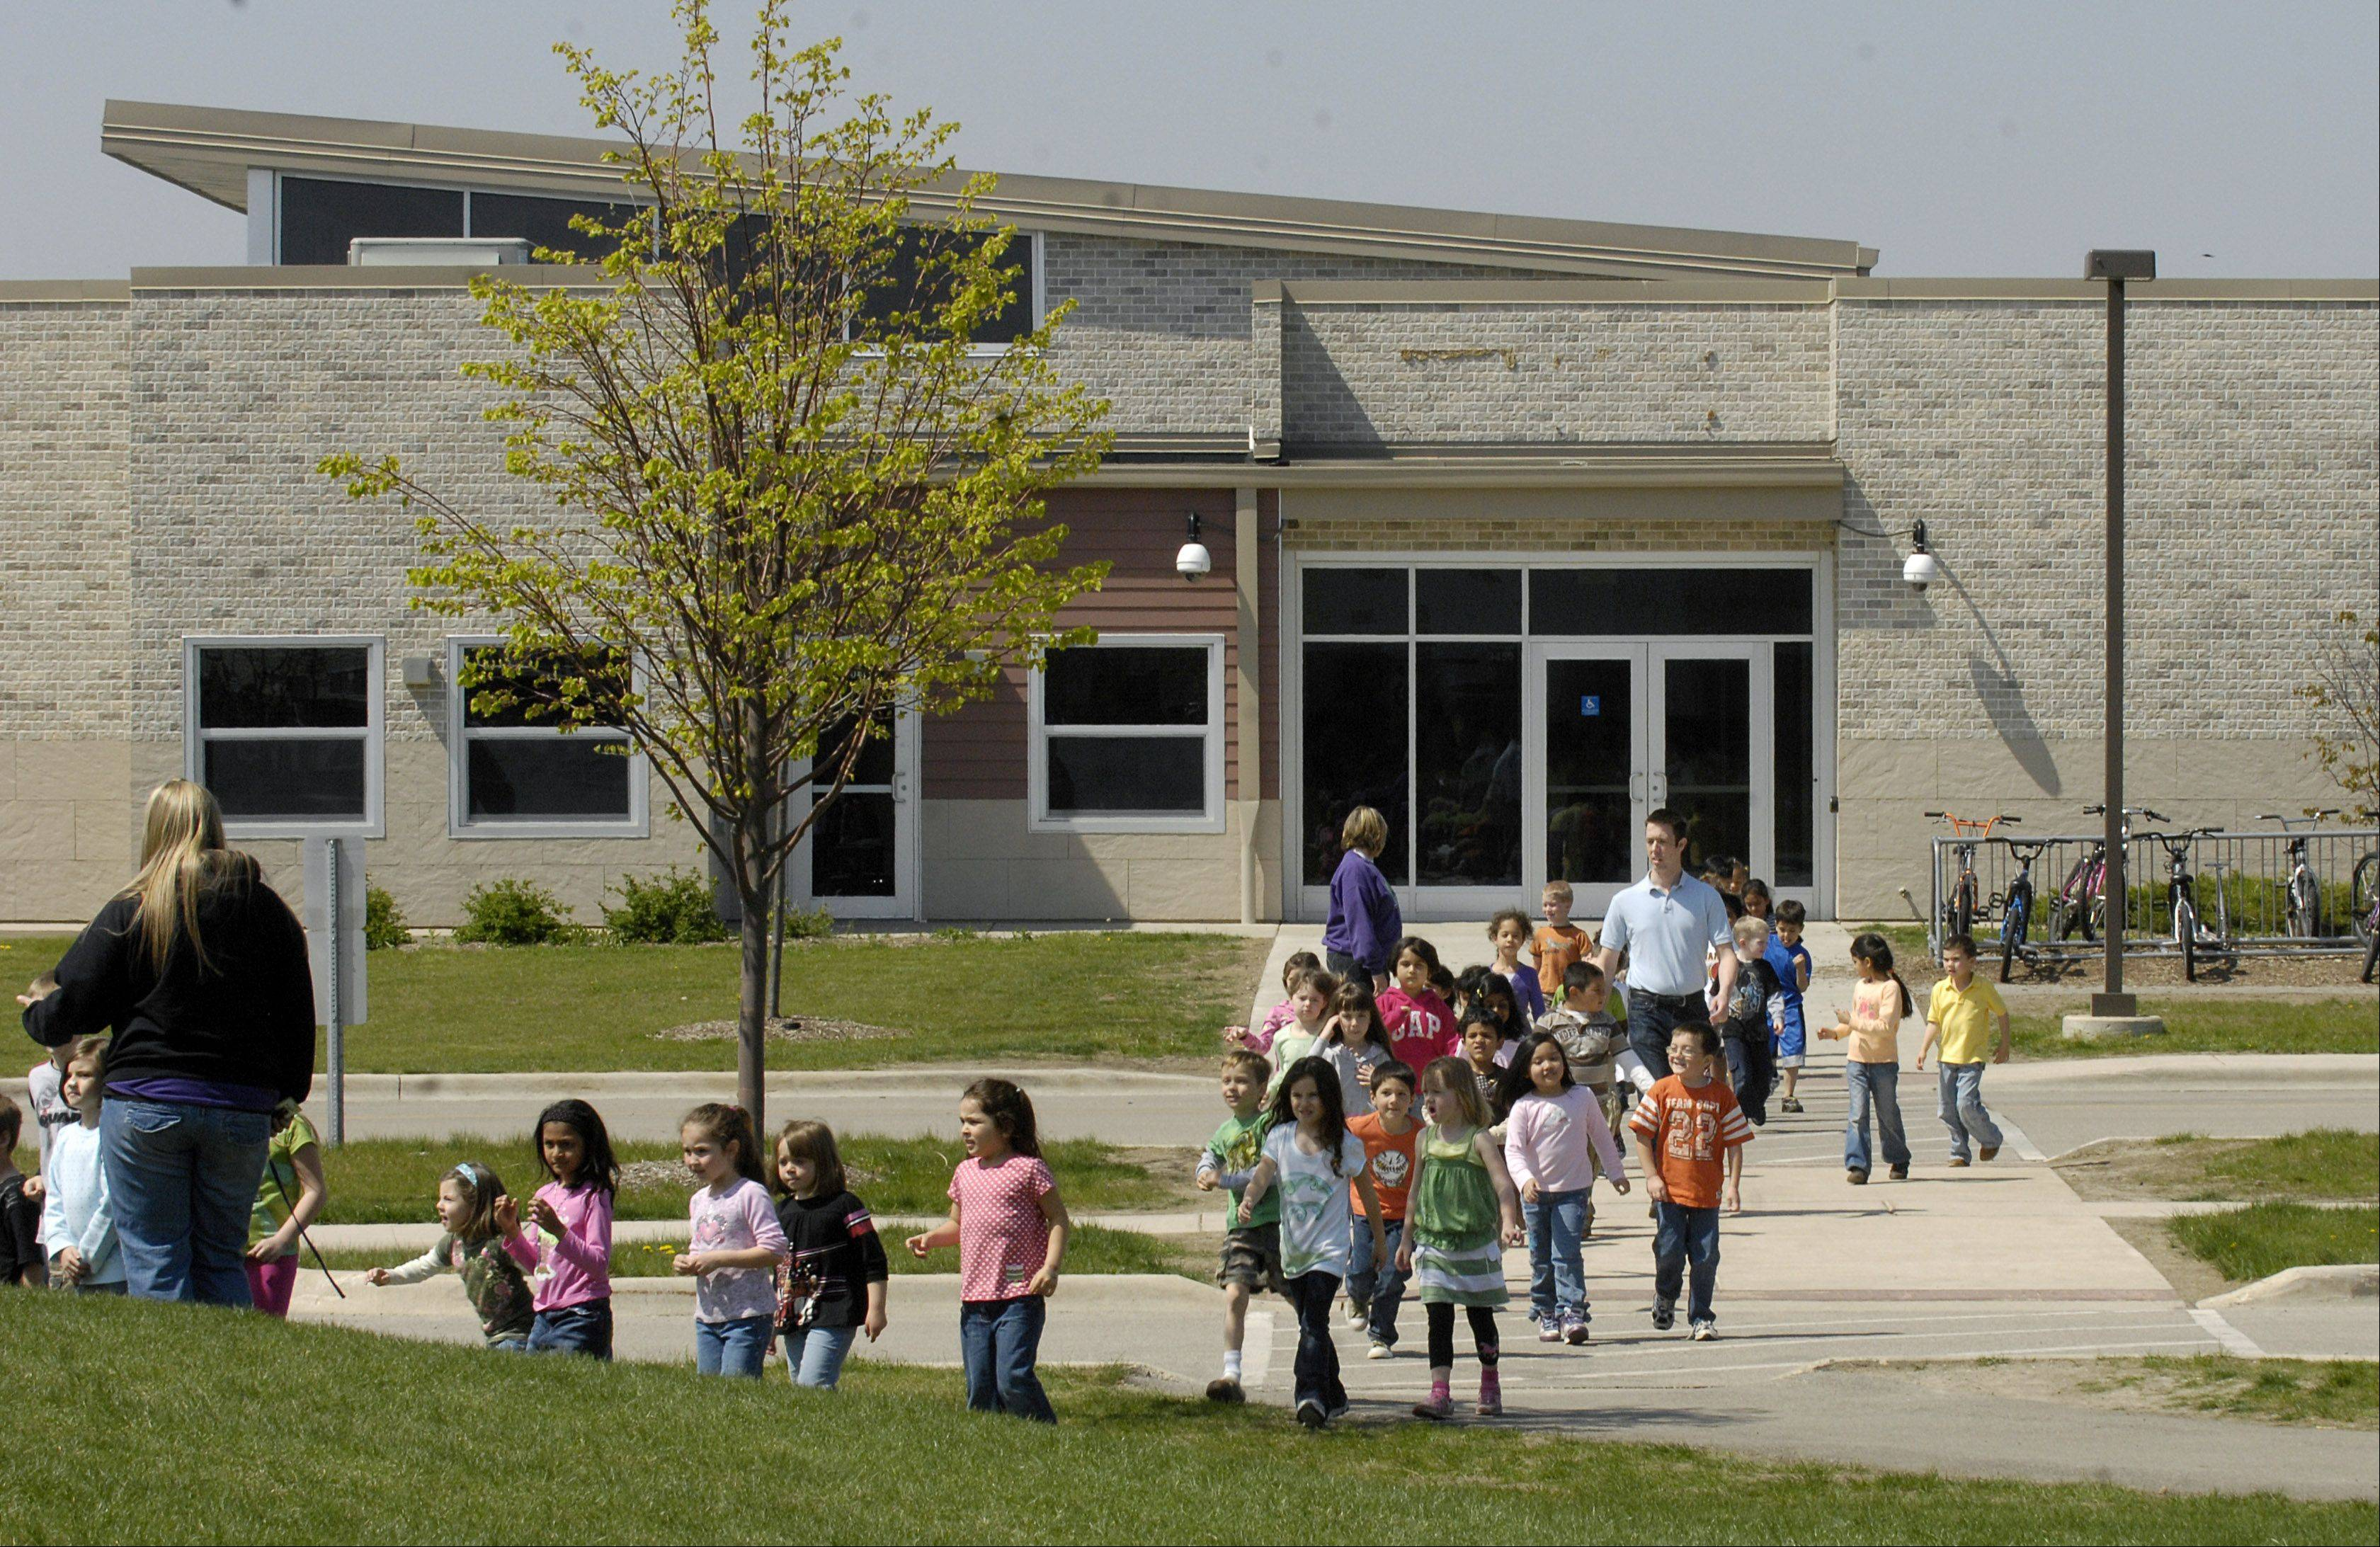 Cambridge Lakes Charter School in Pingree Grove has been told by the state to make it clear that membership fees, which violate state law, are voluntary.